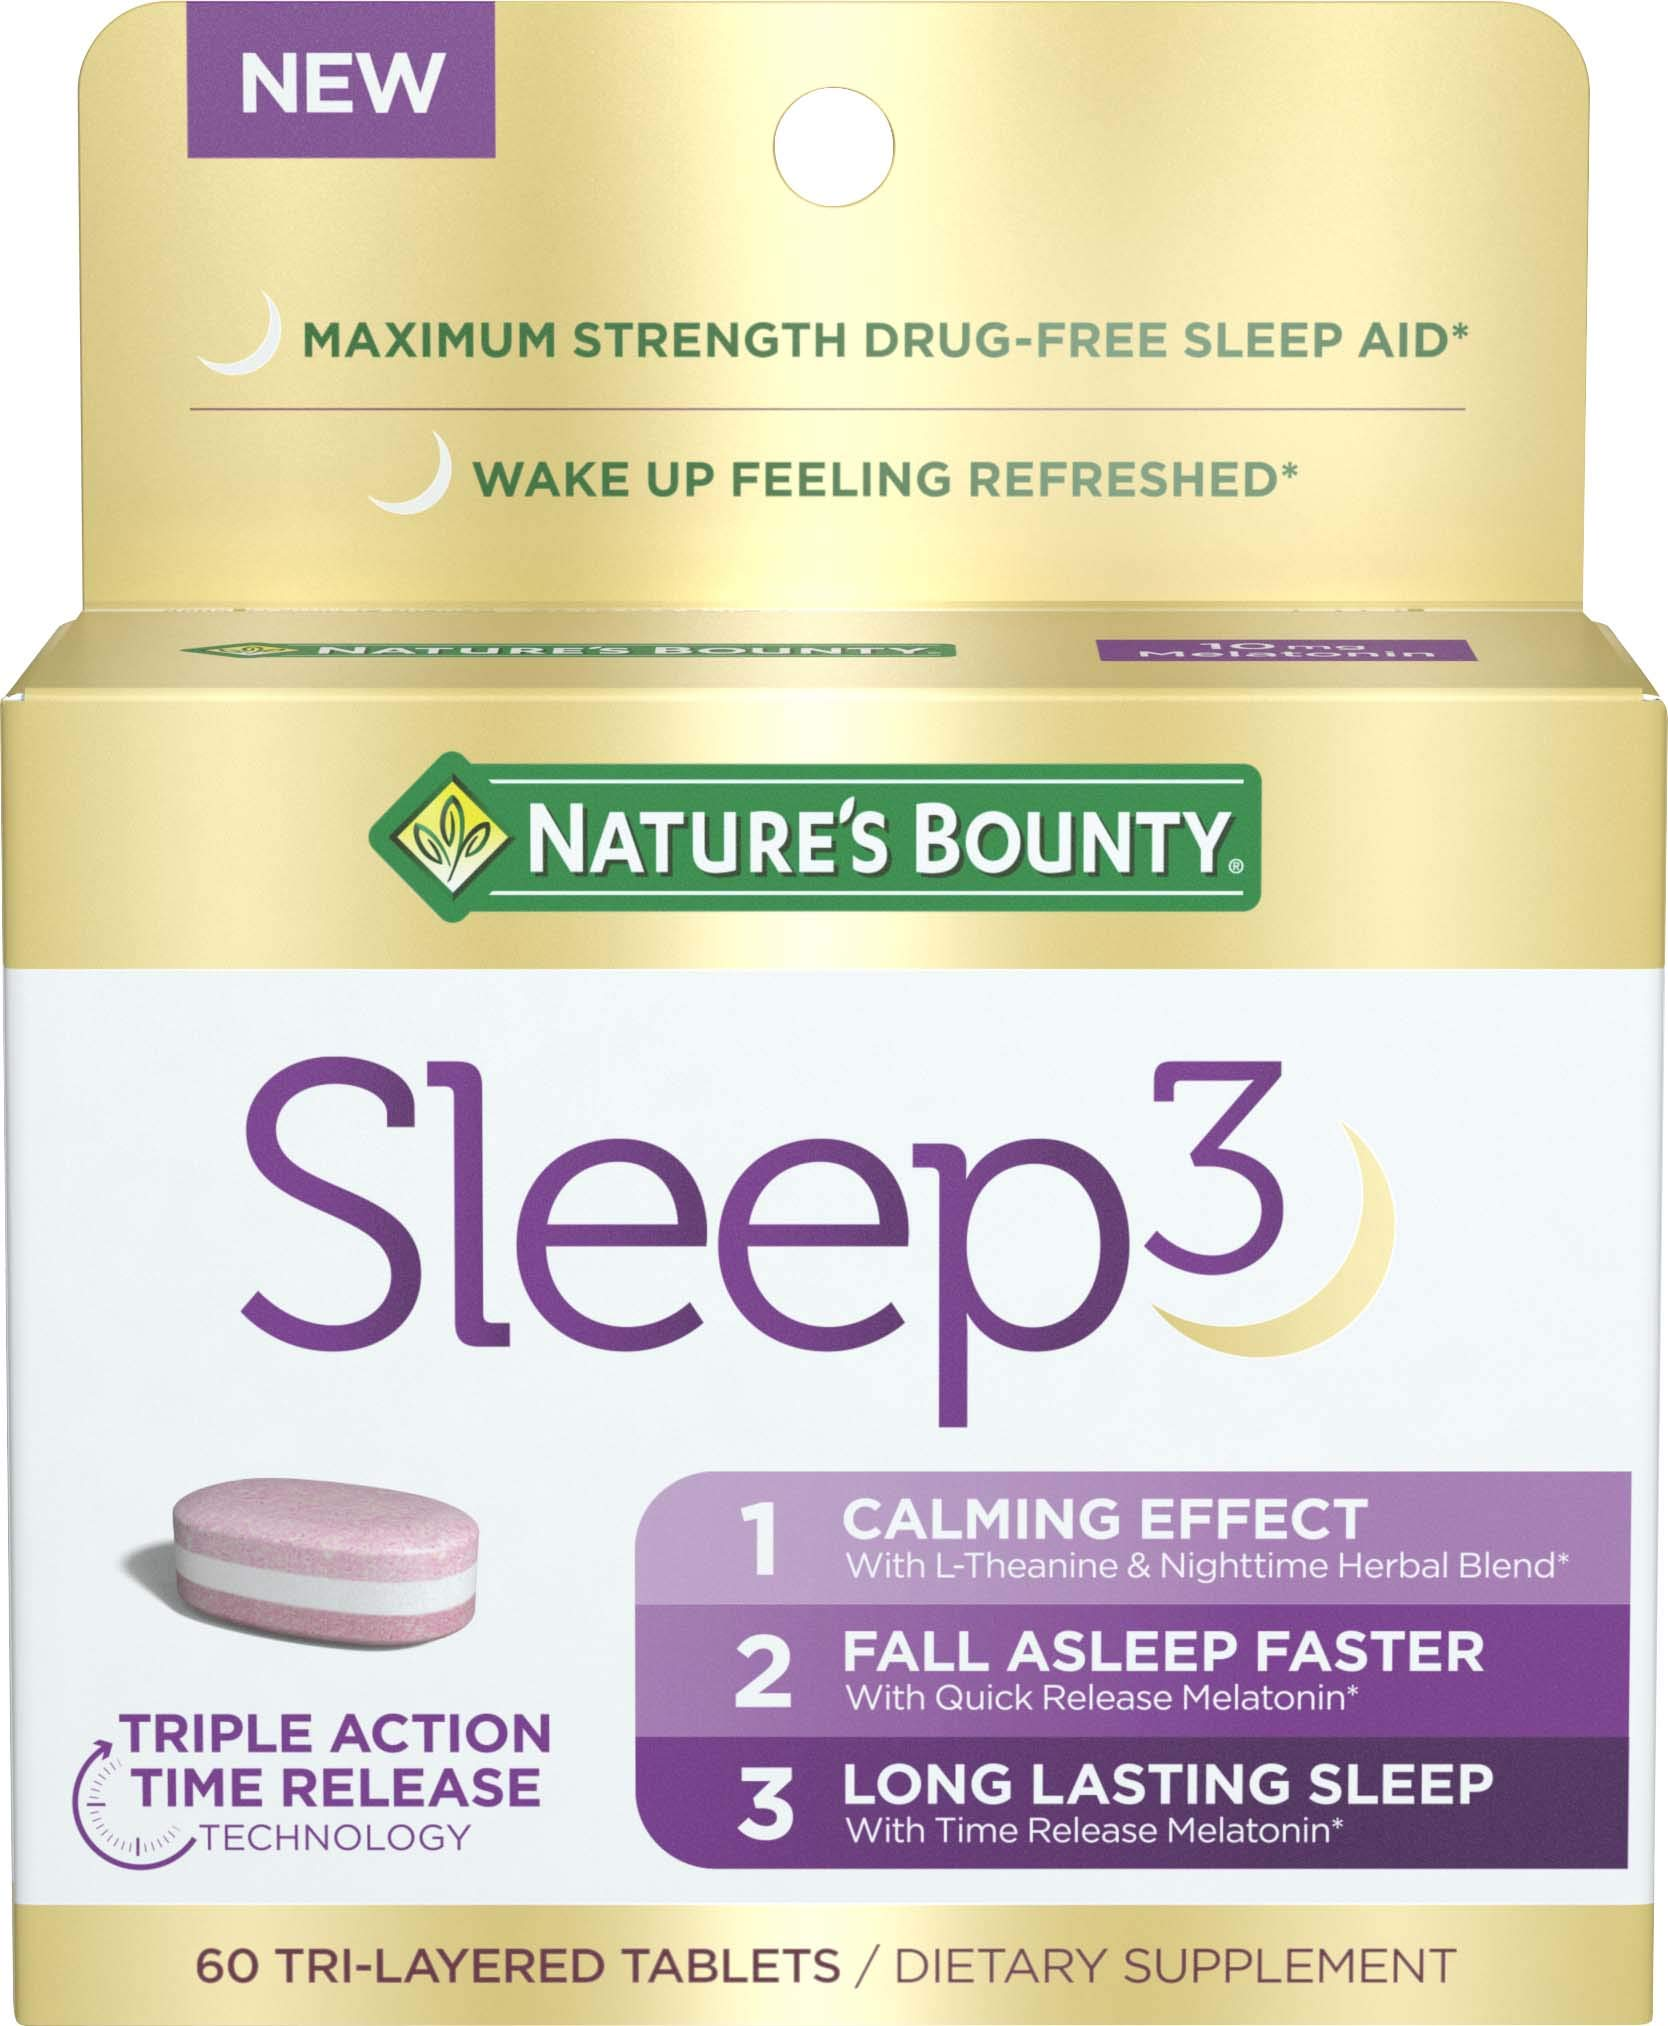 Nature's Bounty Sleep3 Tri-Layer Melatonin, with L-Theanine & Nighttime Herbal Blend, for Long Lasting Sleep for Occasional Sleeplessness* with Time Release 10mg of Melatonin, 60Count by Nature's Bounty